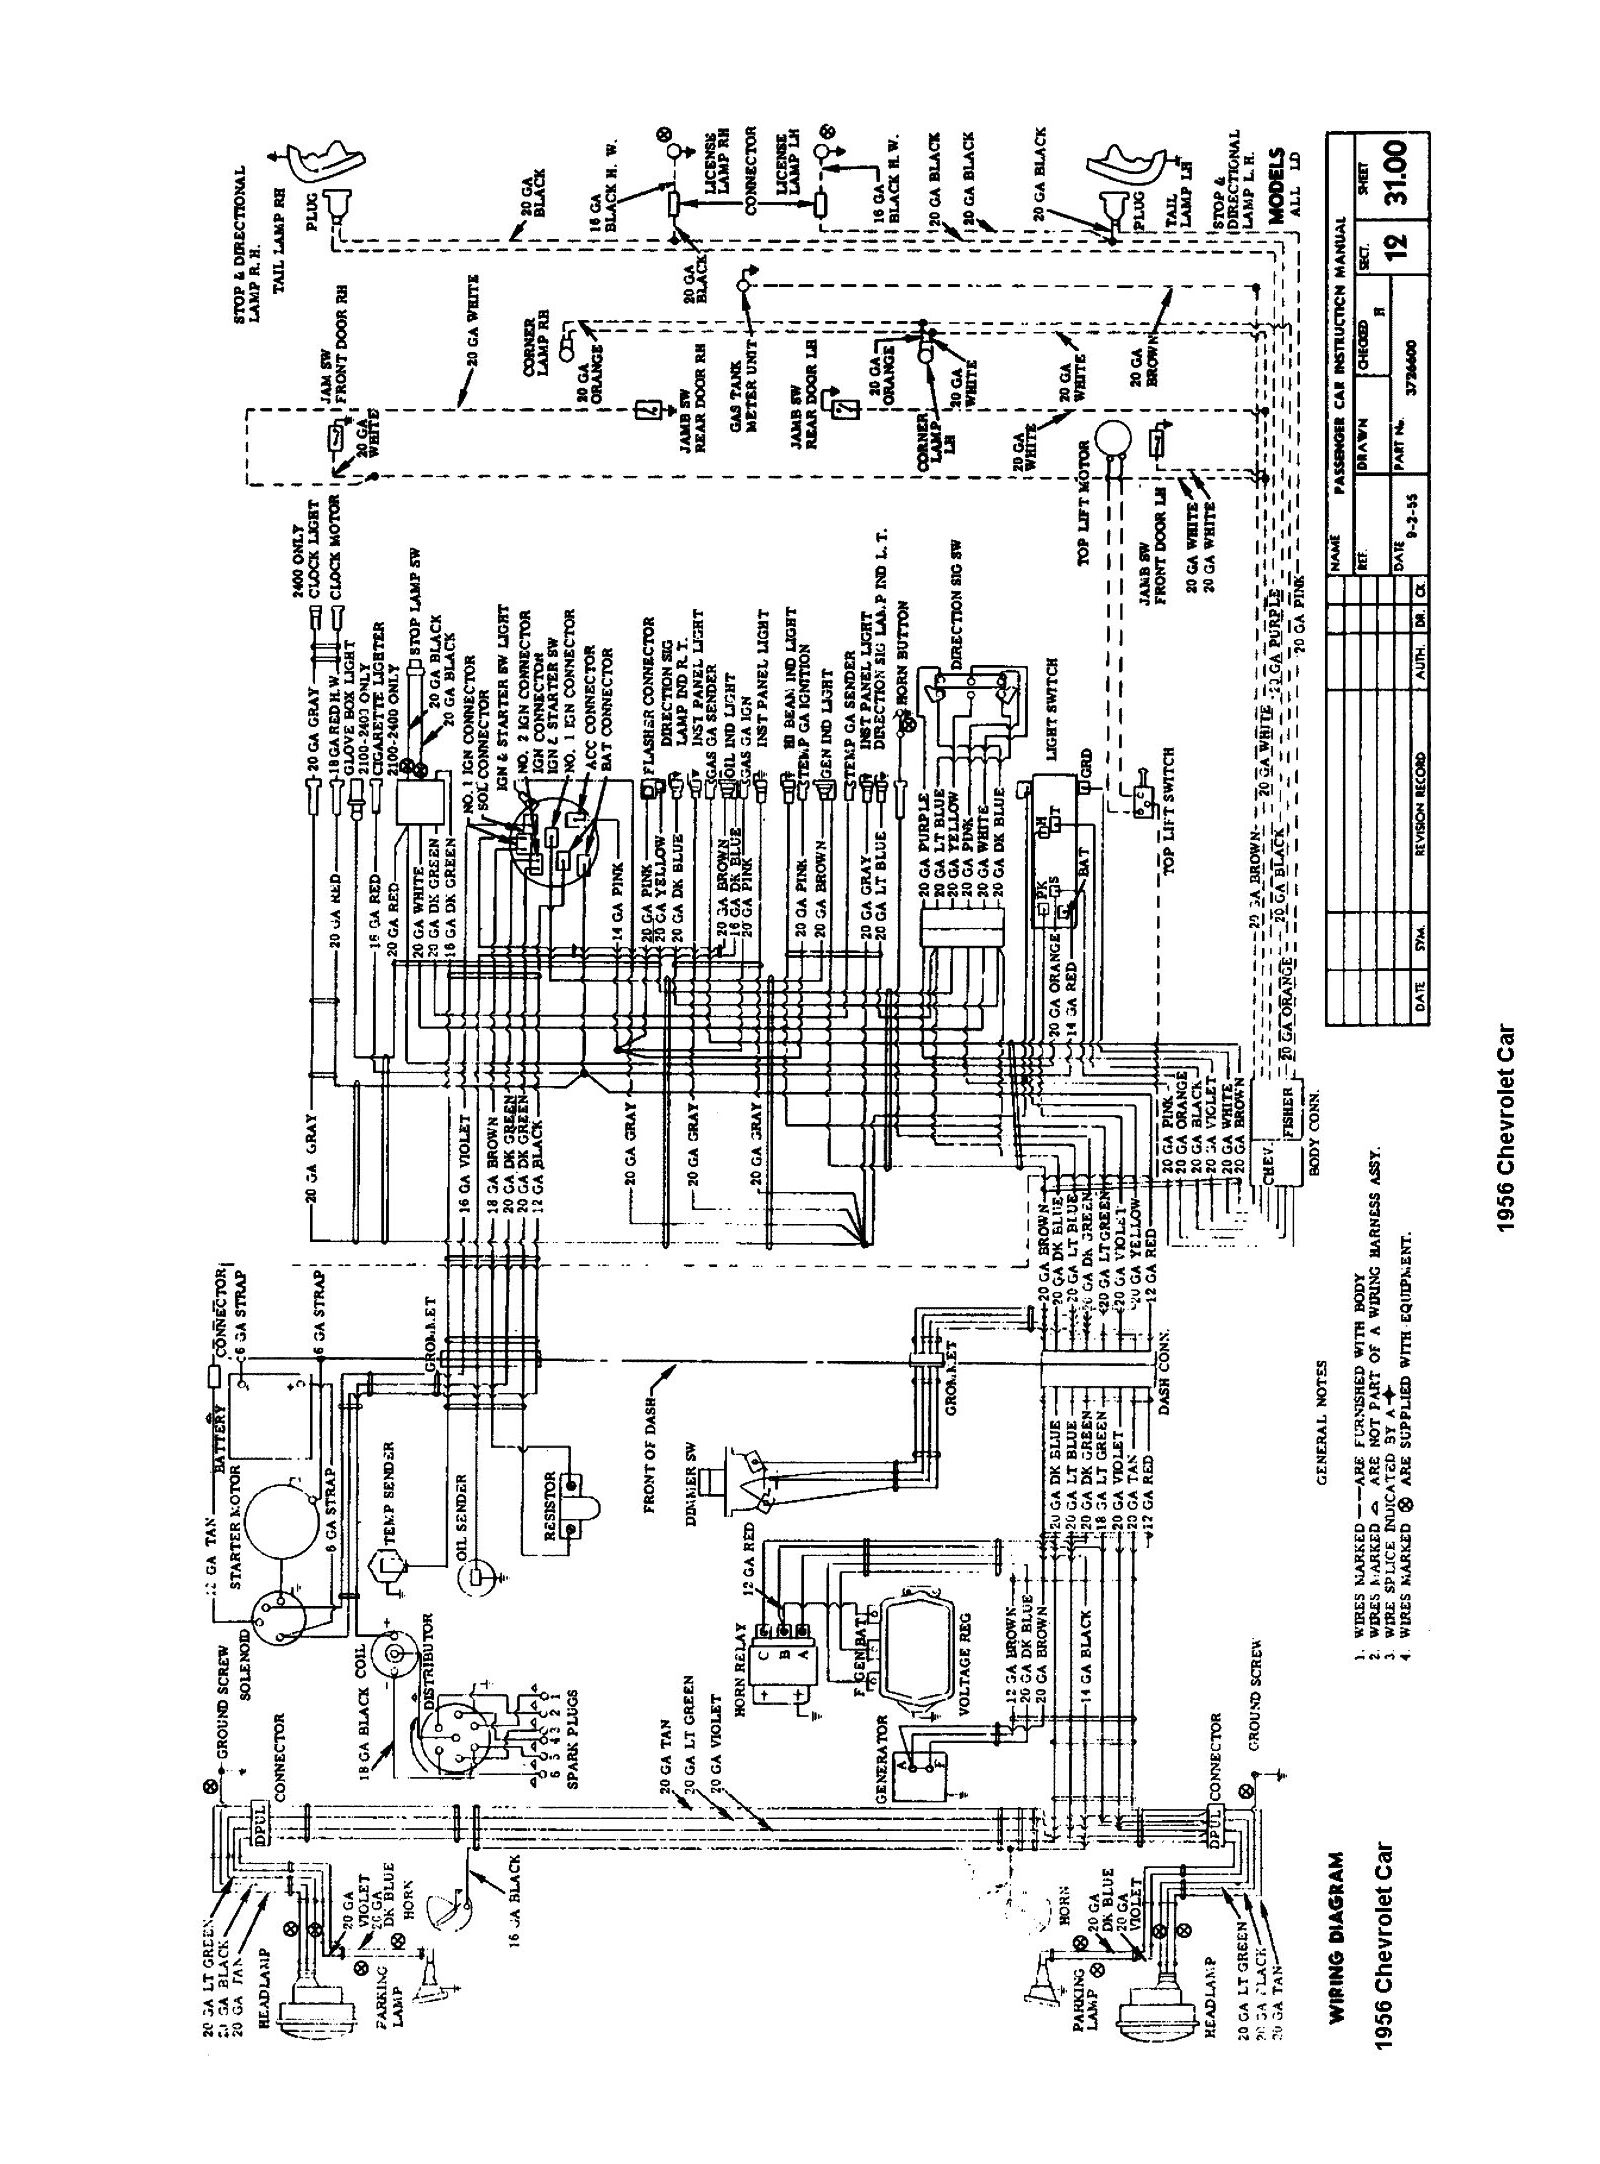 [WRG-4274] 12 Volt Wiring Diagram For 1956 Chevy